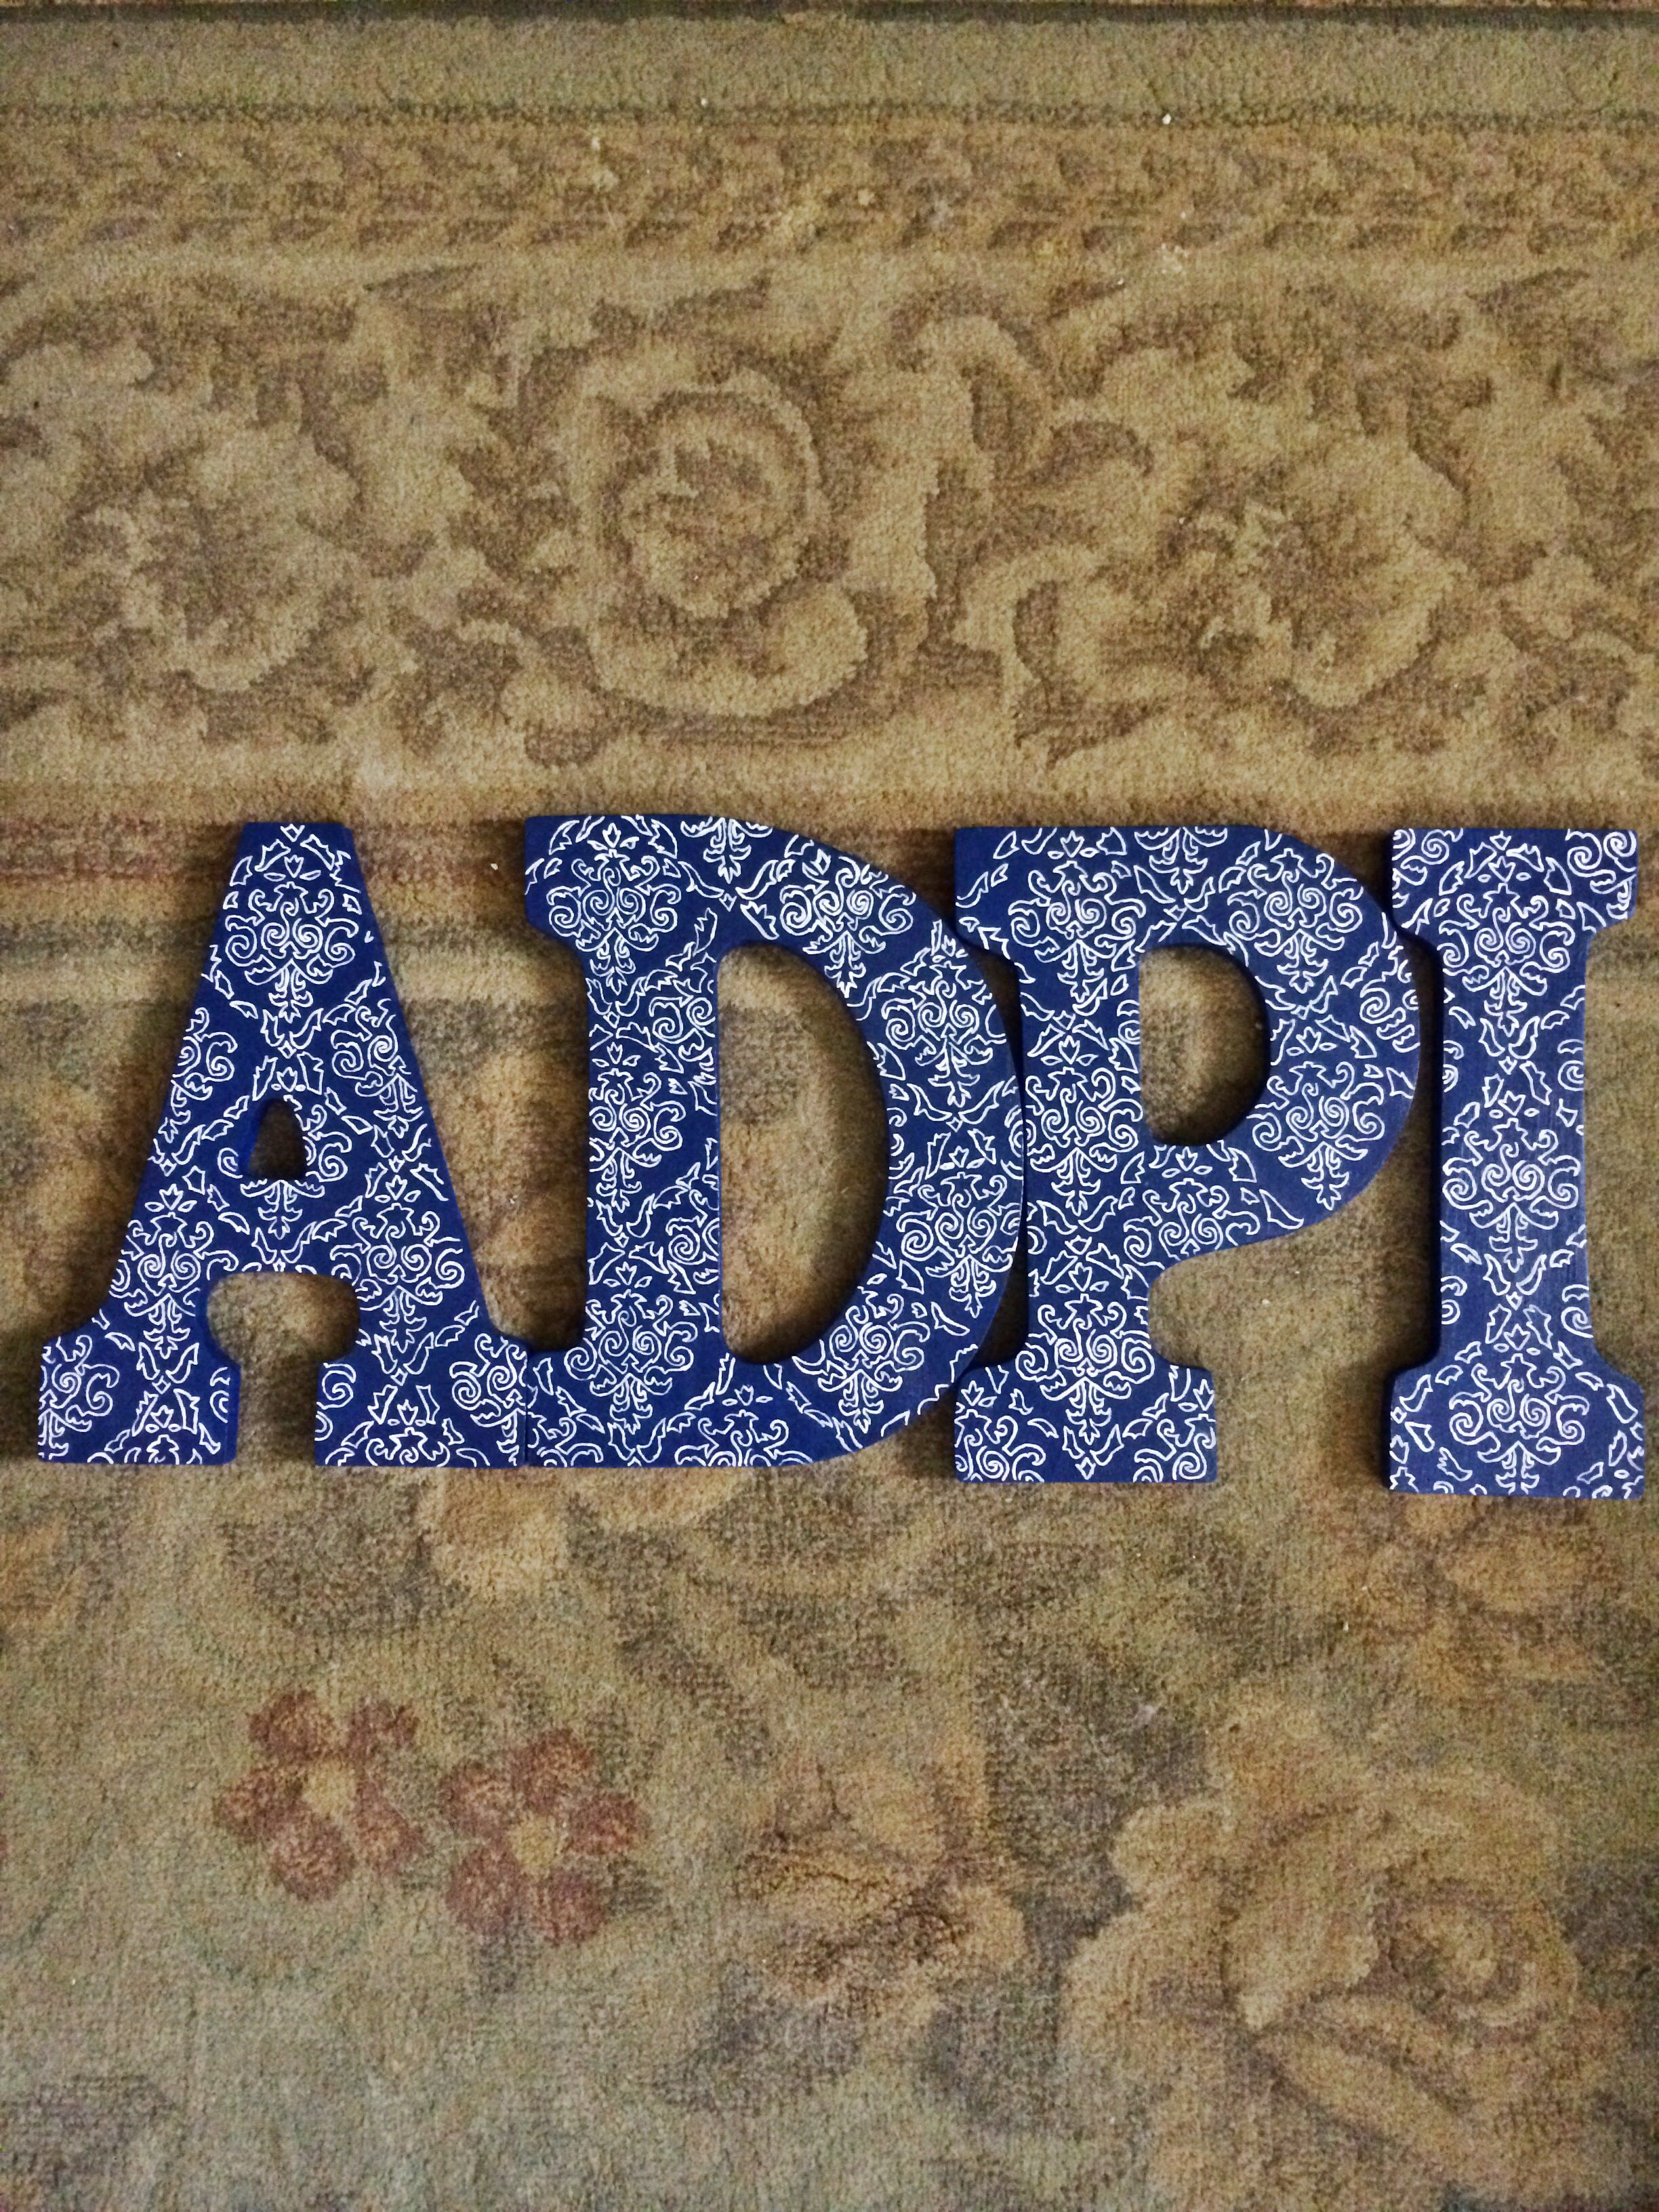 Hand painted my own ADPi damask letters  #LoveMySorority